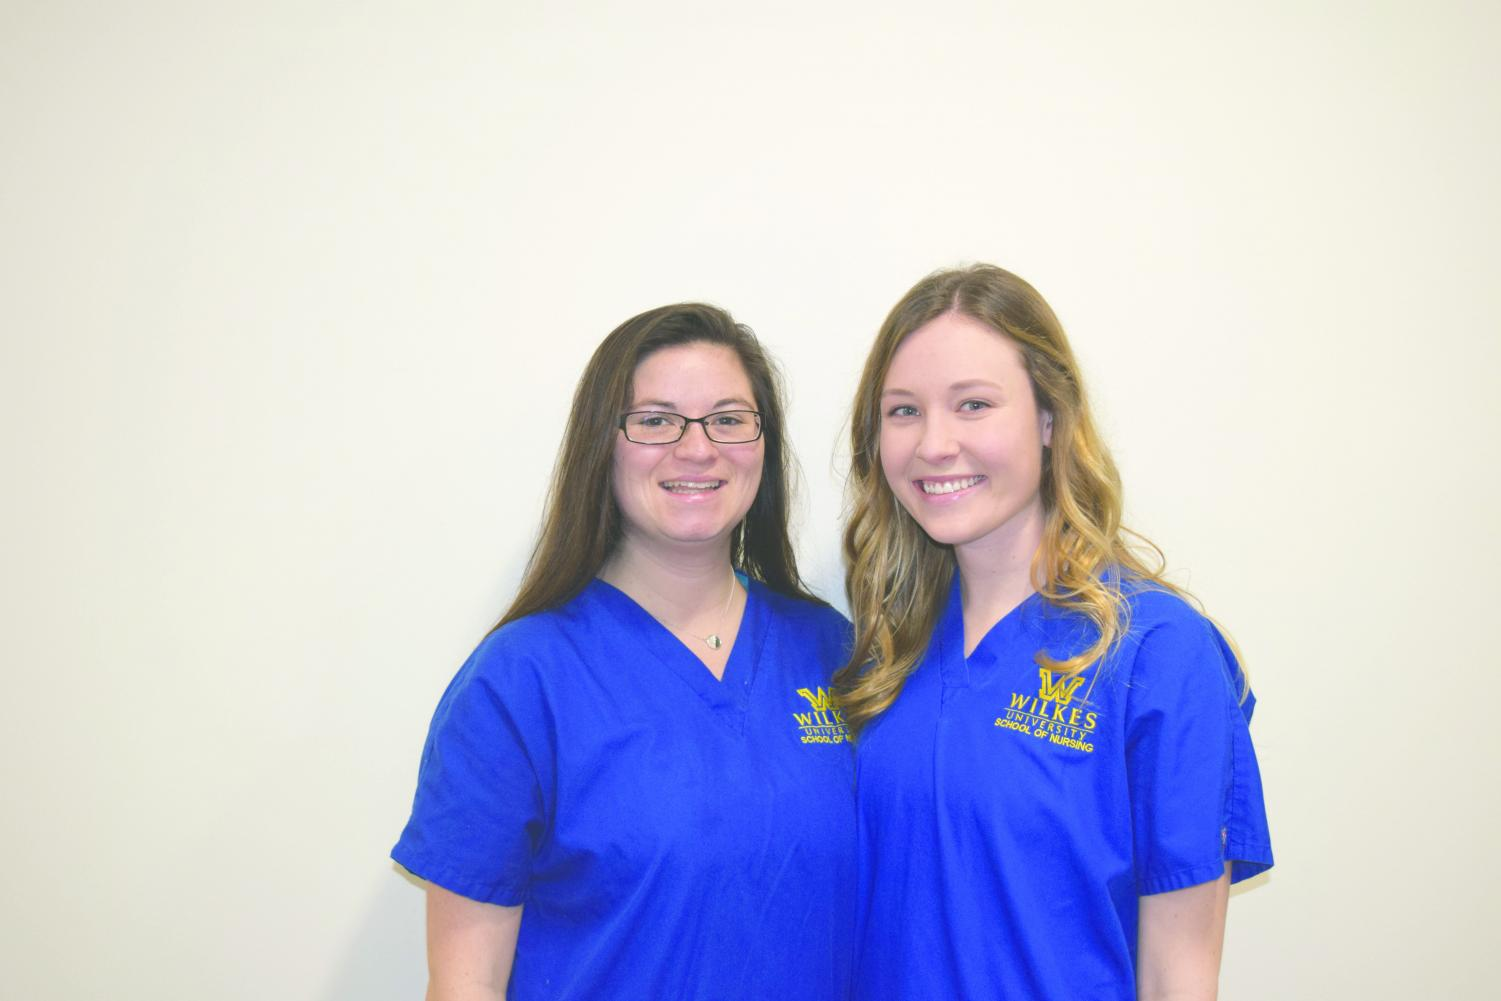 Theresa Couchara and Kim Roman, both junior nursing students, were able to help a Panamanian exchange student, utilizing their years of nursing school education.